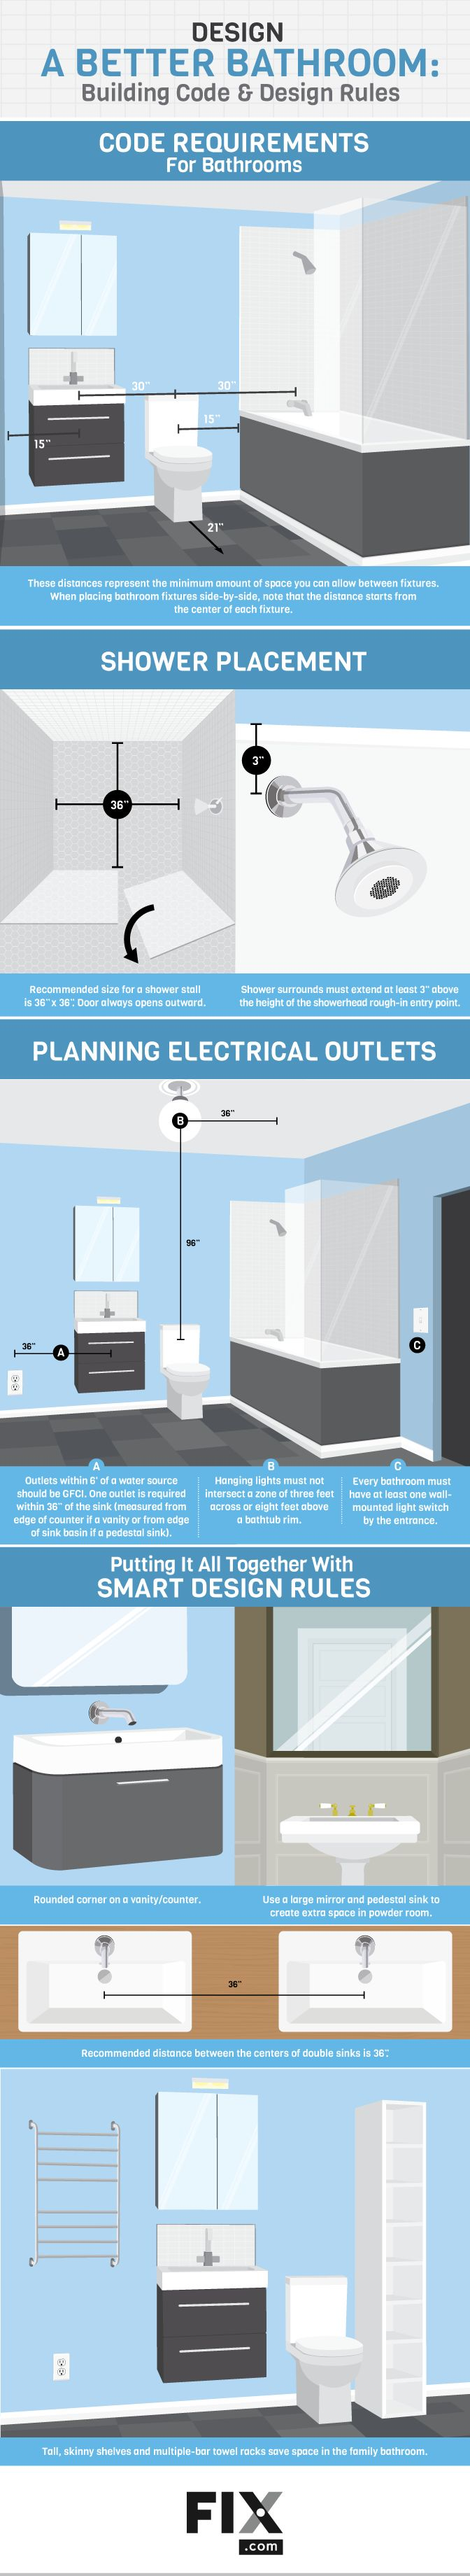 6x9 bathroom layout - Learn How Building Code And Good Design Rules Can Help You Design A Better Bathroom